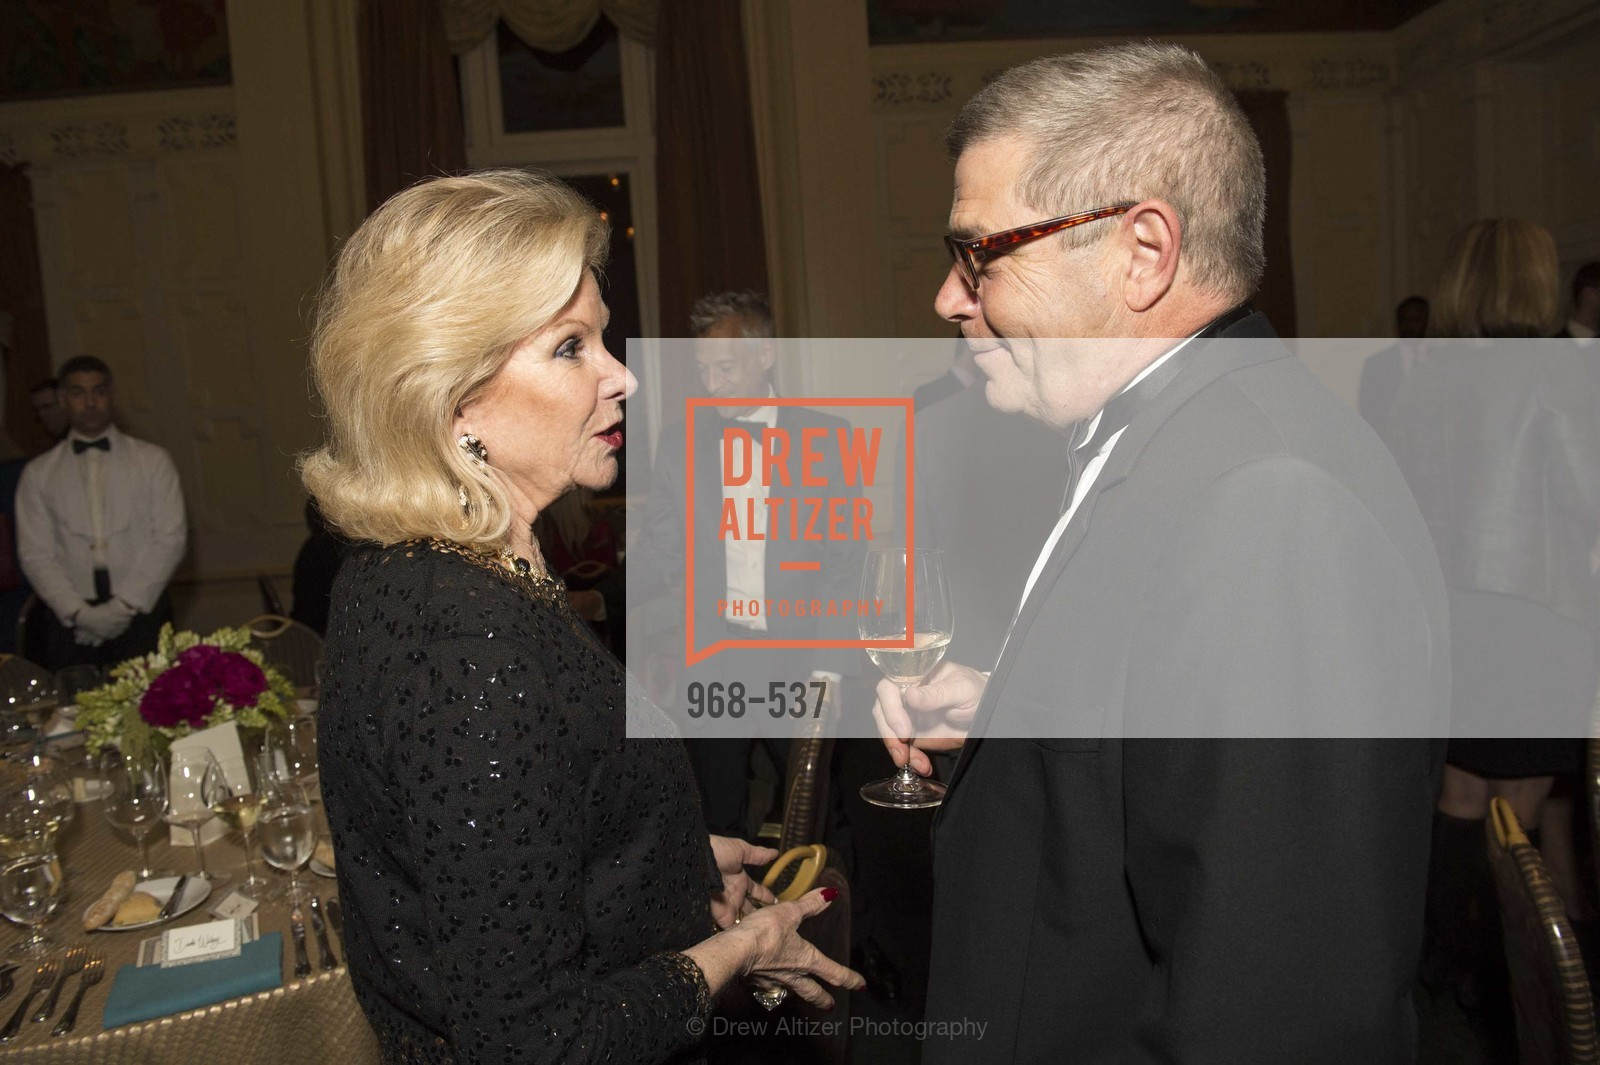 Dede Wilsey, TOP OF THE MARK'S 75TH Anniversary Party, US, November 6th, 2014,Drew Altizer, Drew Altizer Photography, full-service agency, private events, San Francisco photographer, photographer california